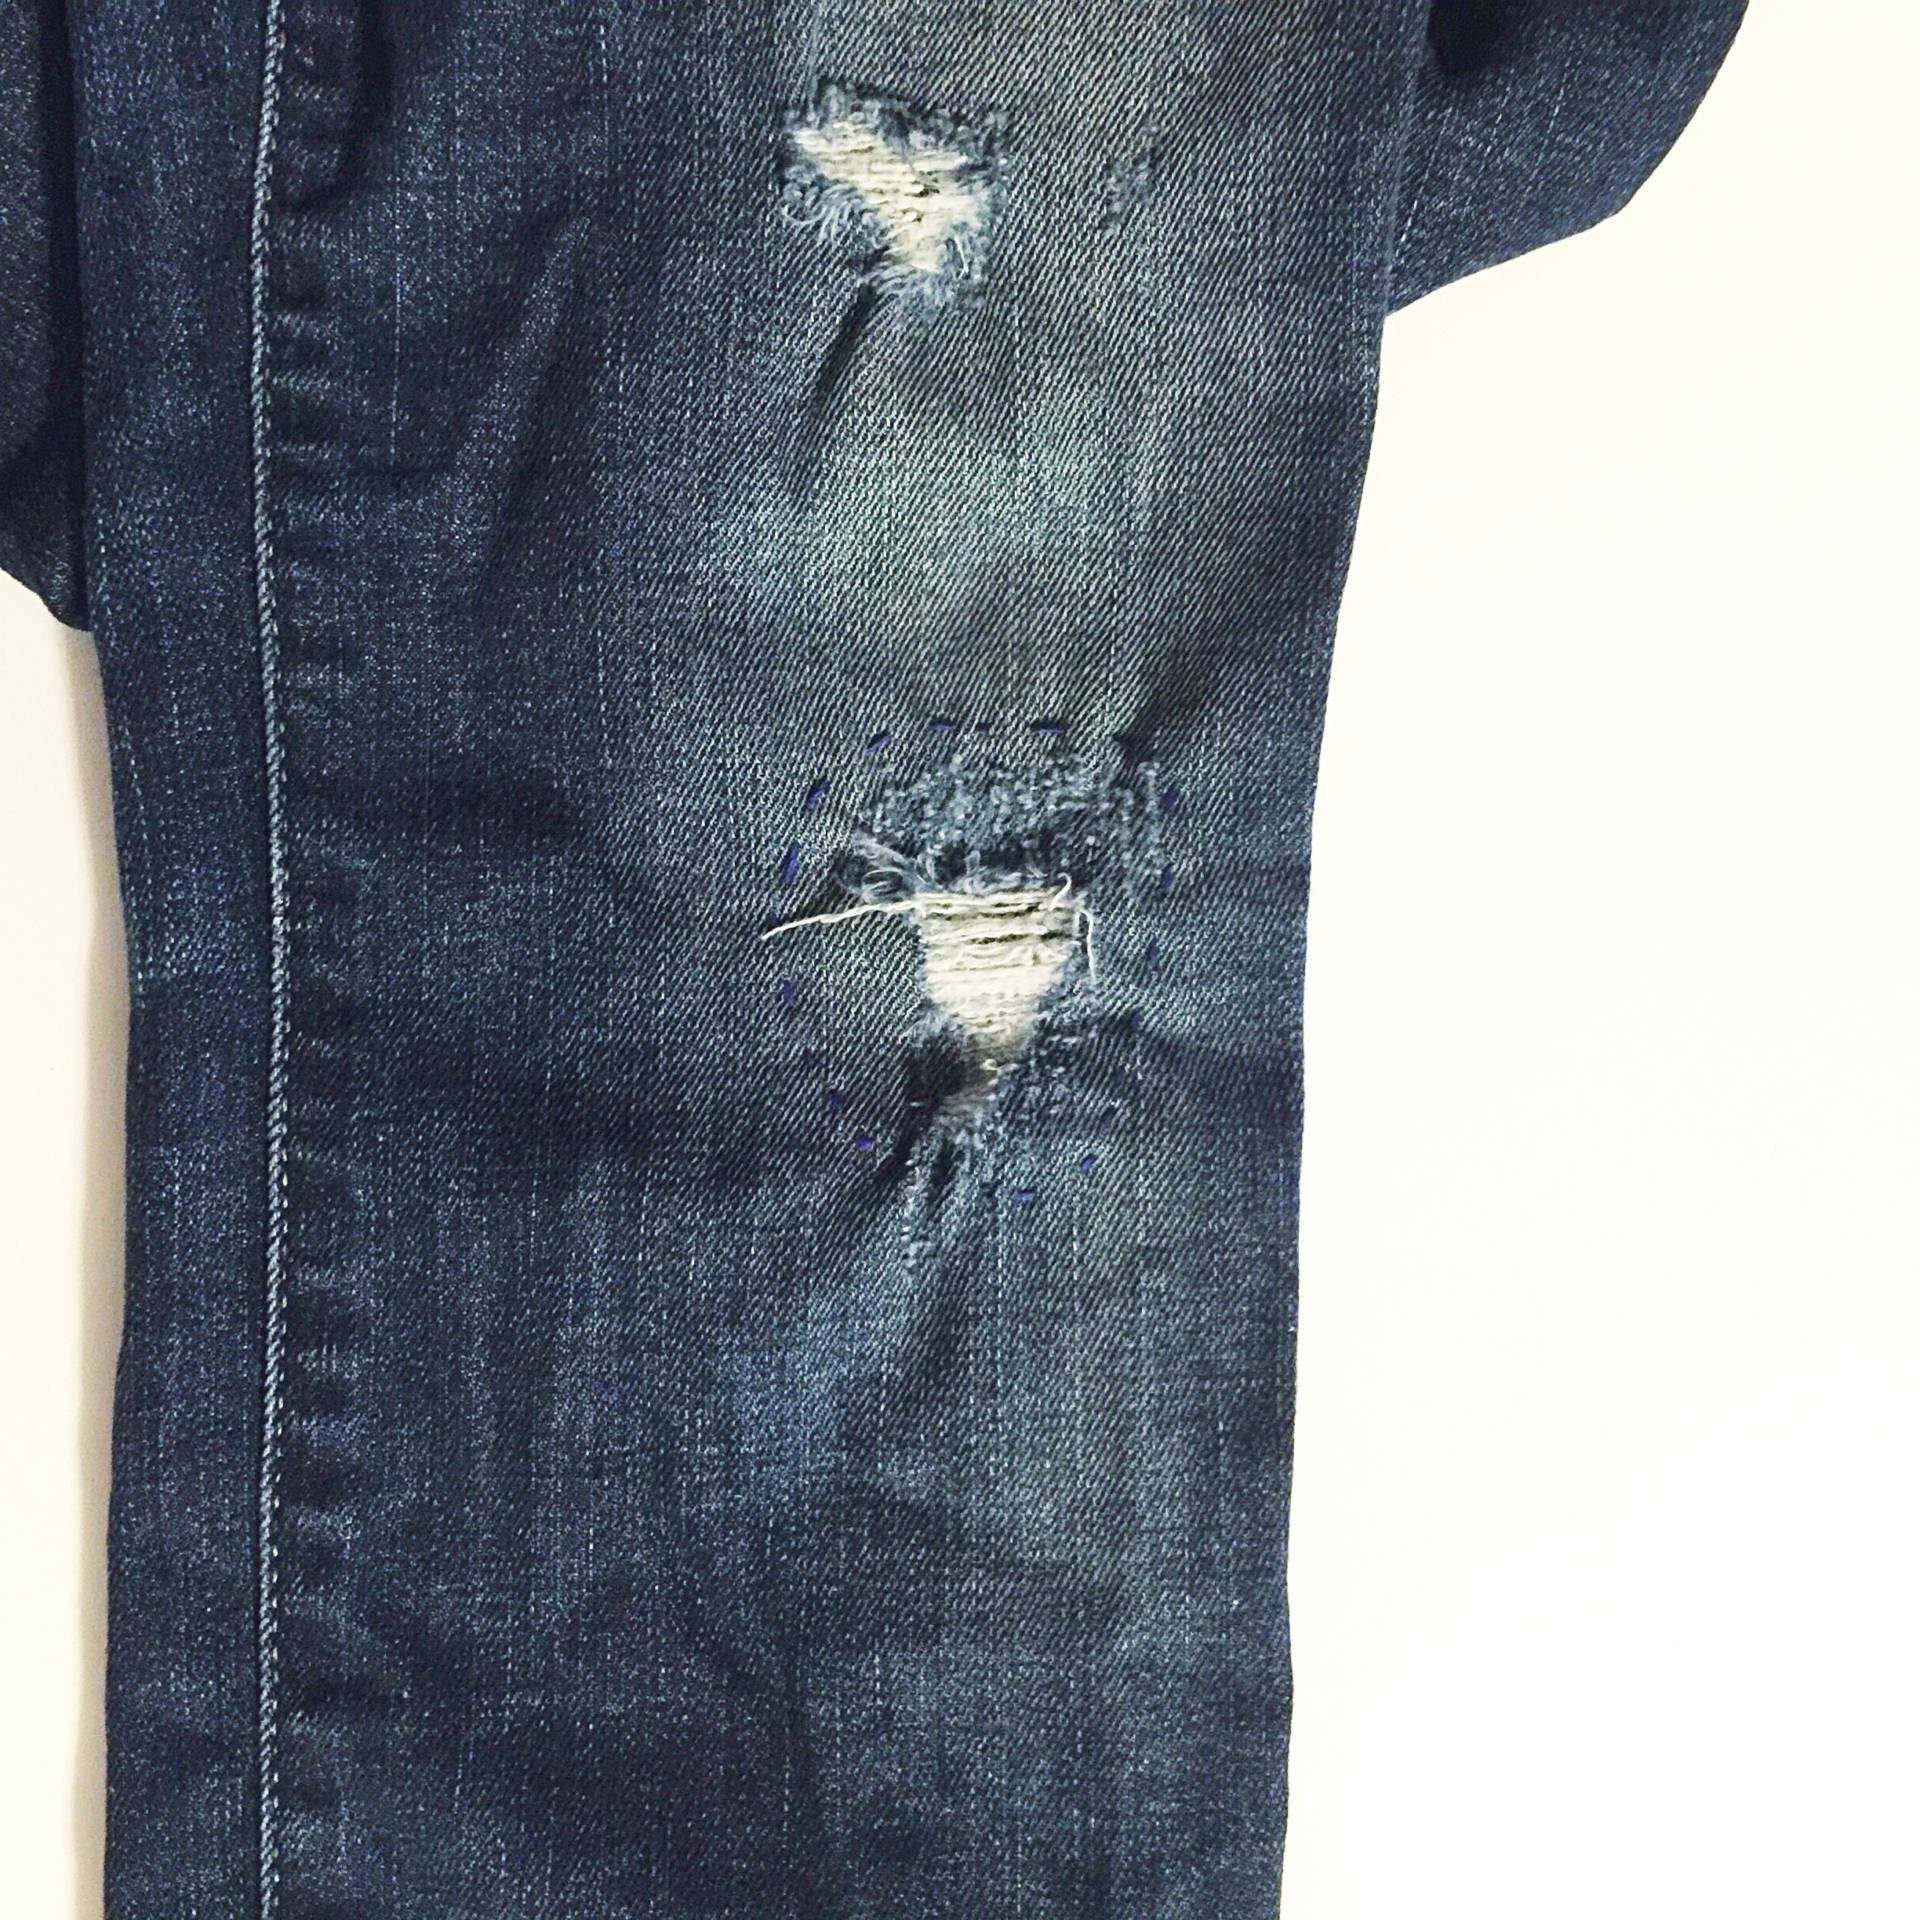 I lined a few overly-distressed spots with on my jeans with lace! Super simple project, and it looks really cute!